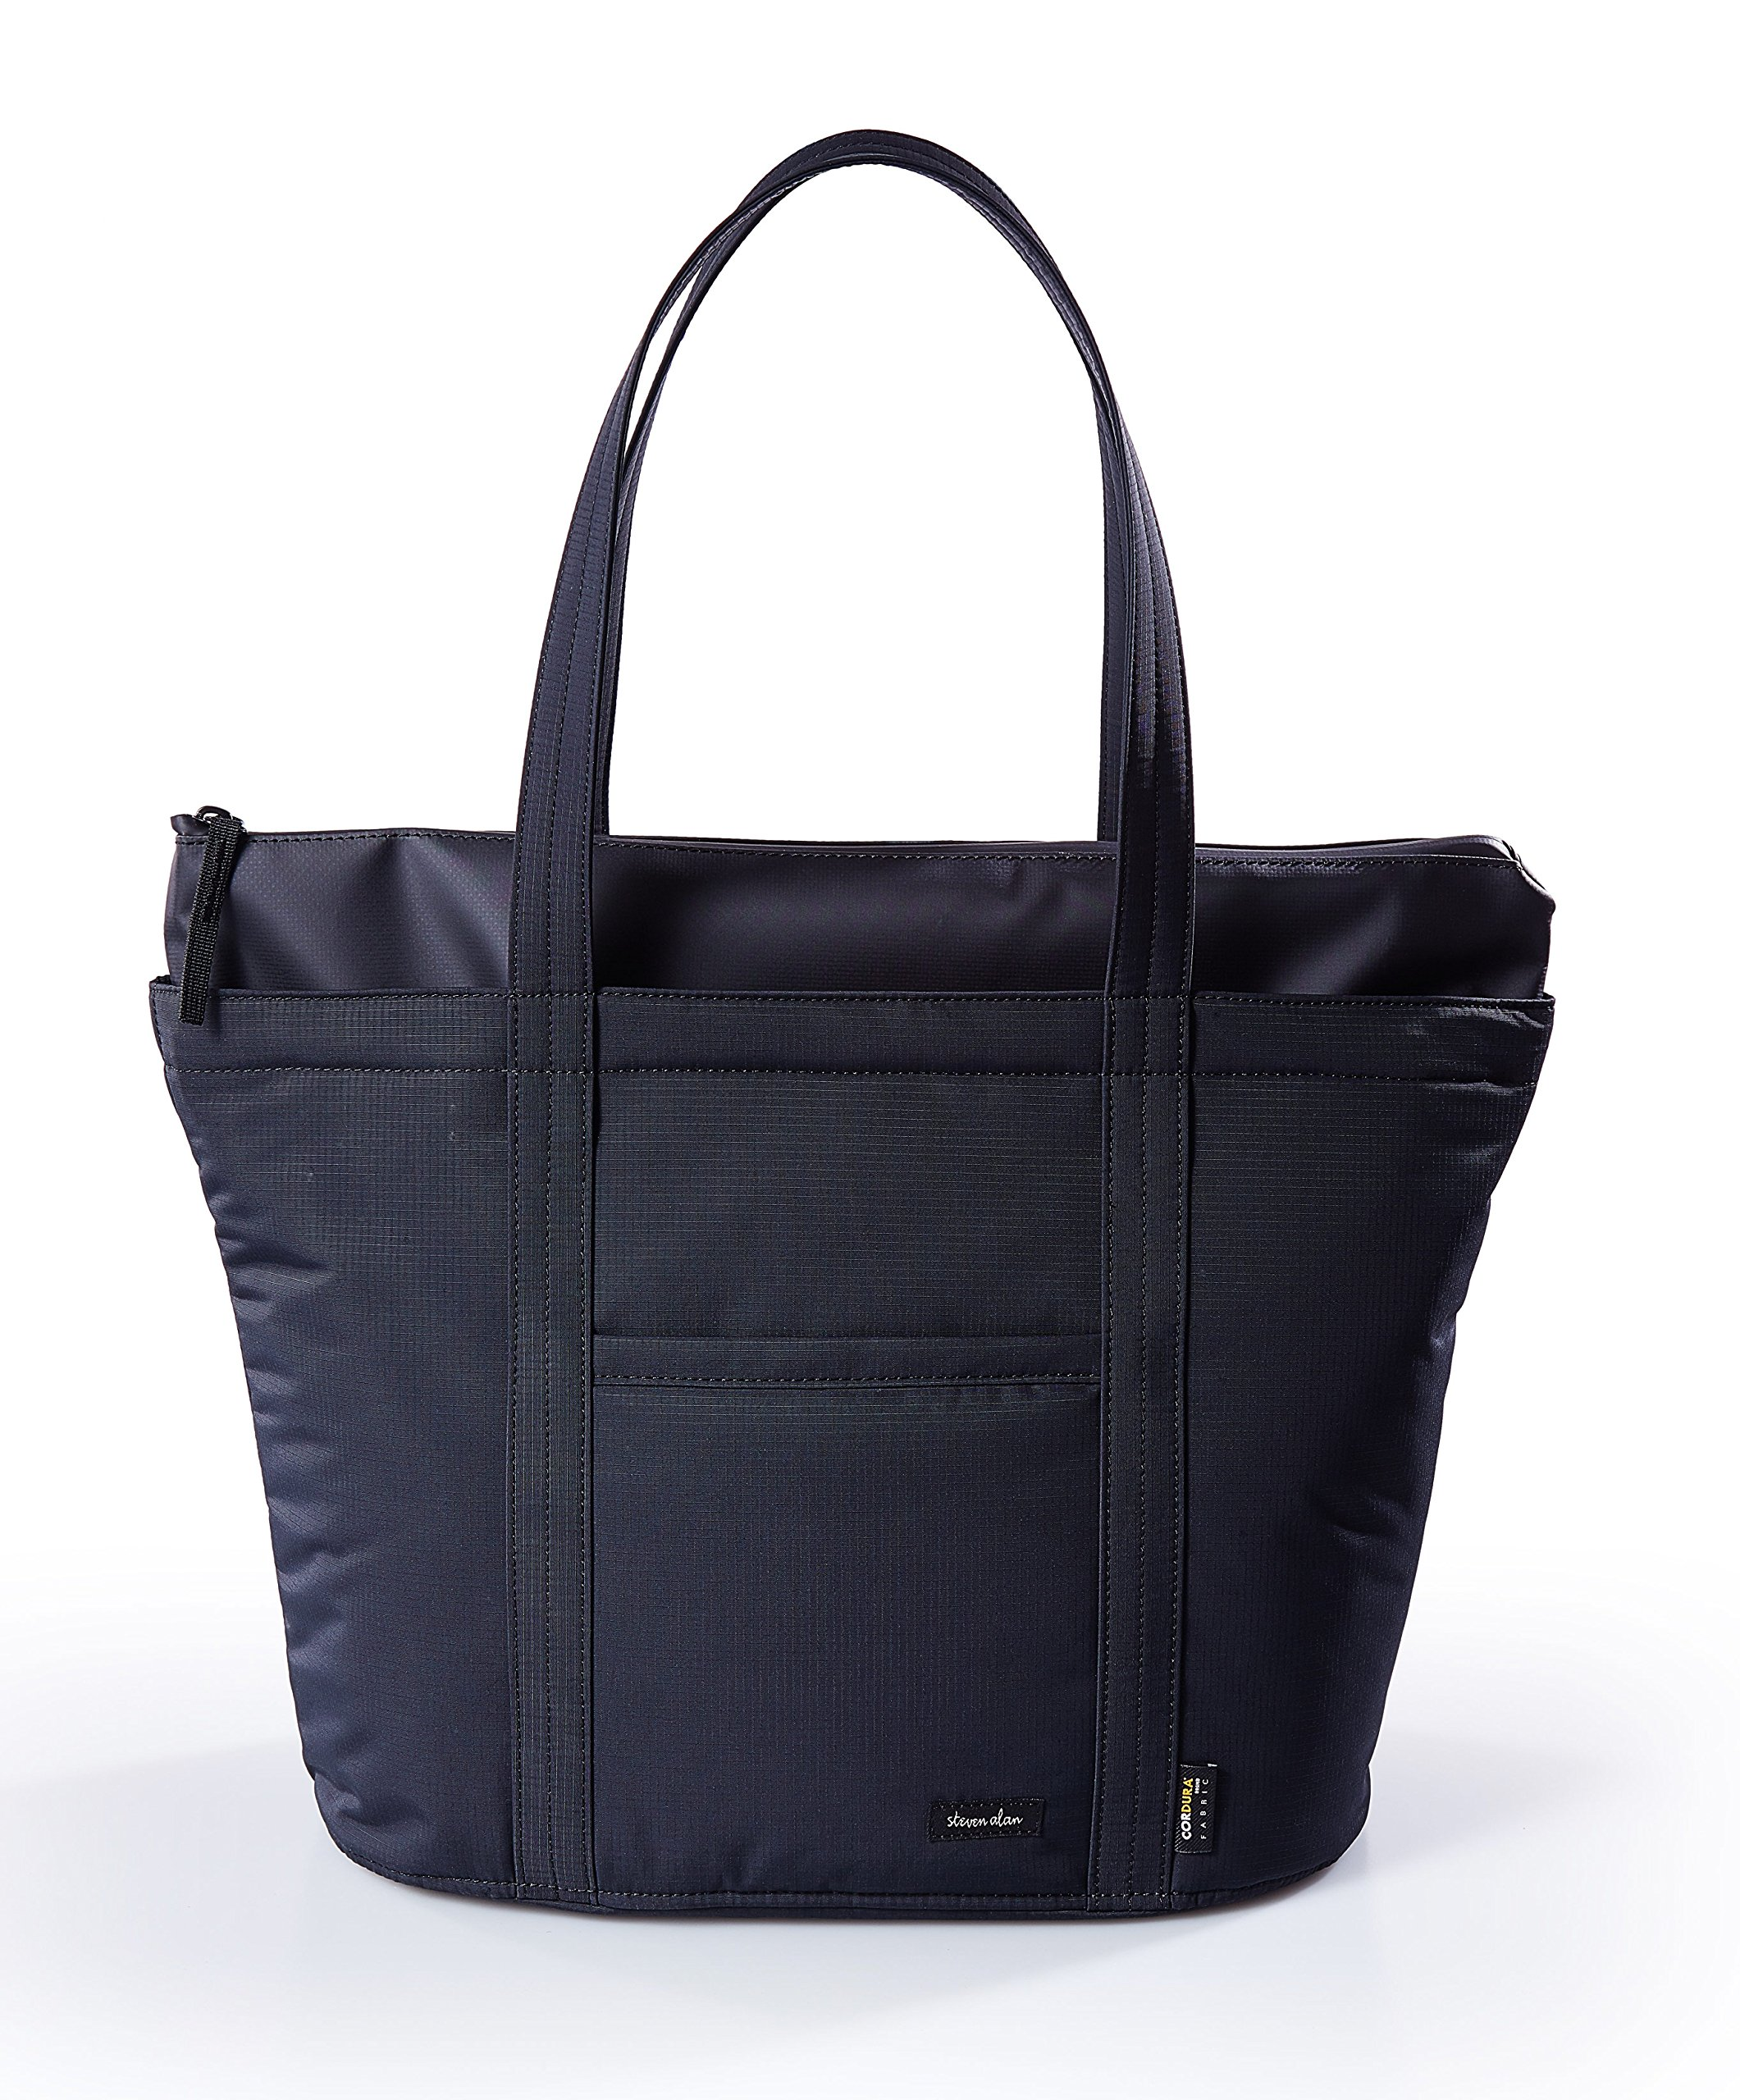 Steven Alan Waterproof Tote Bag Mateo East West Tote for Men SAM204 Black